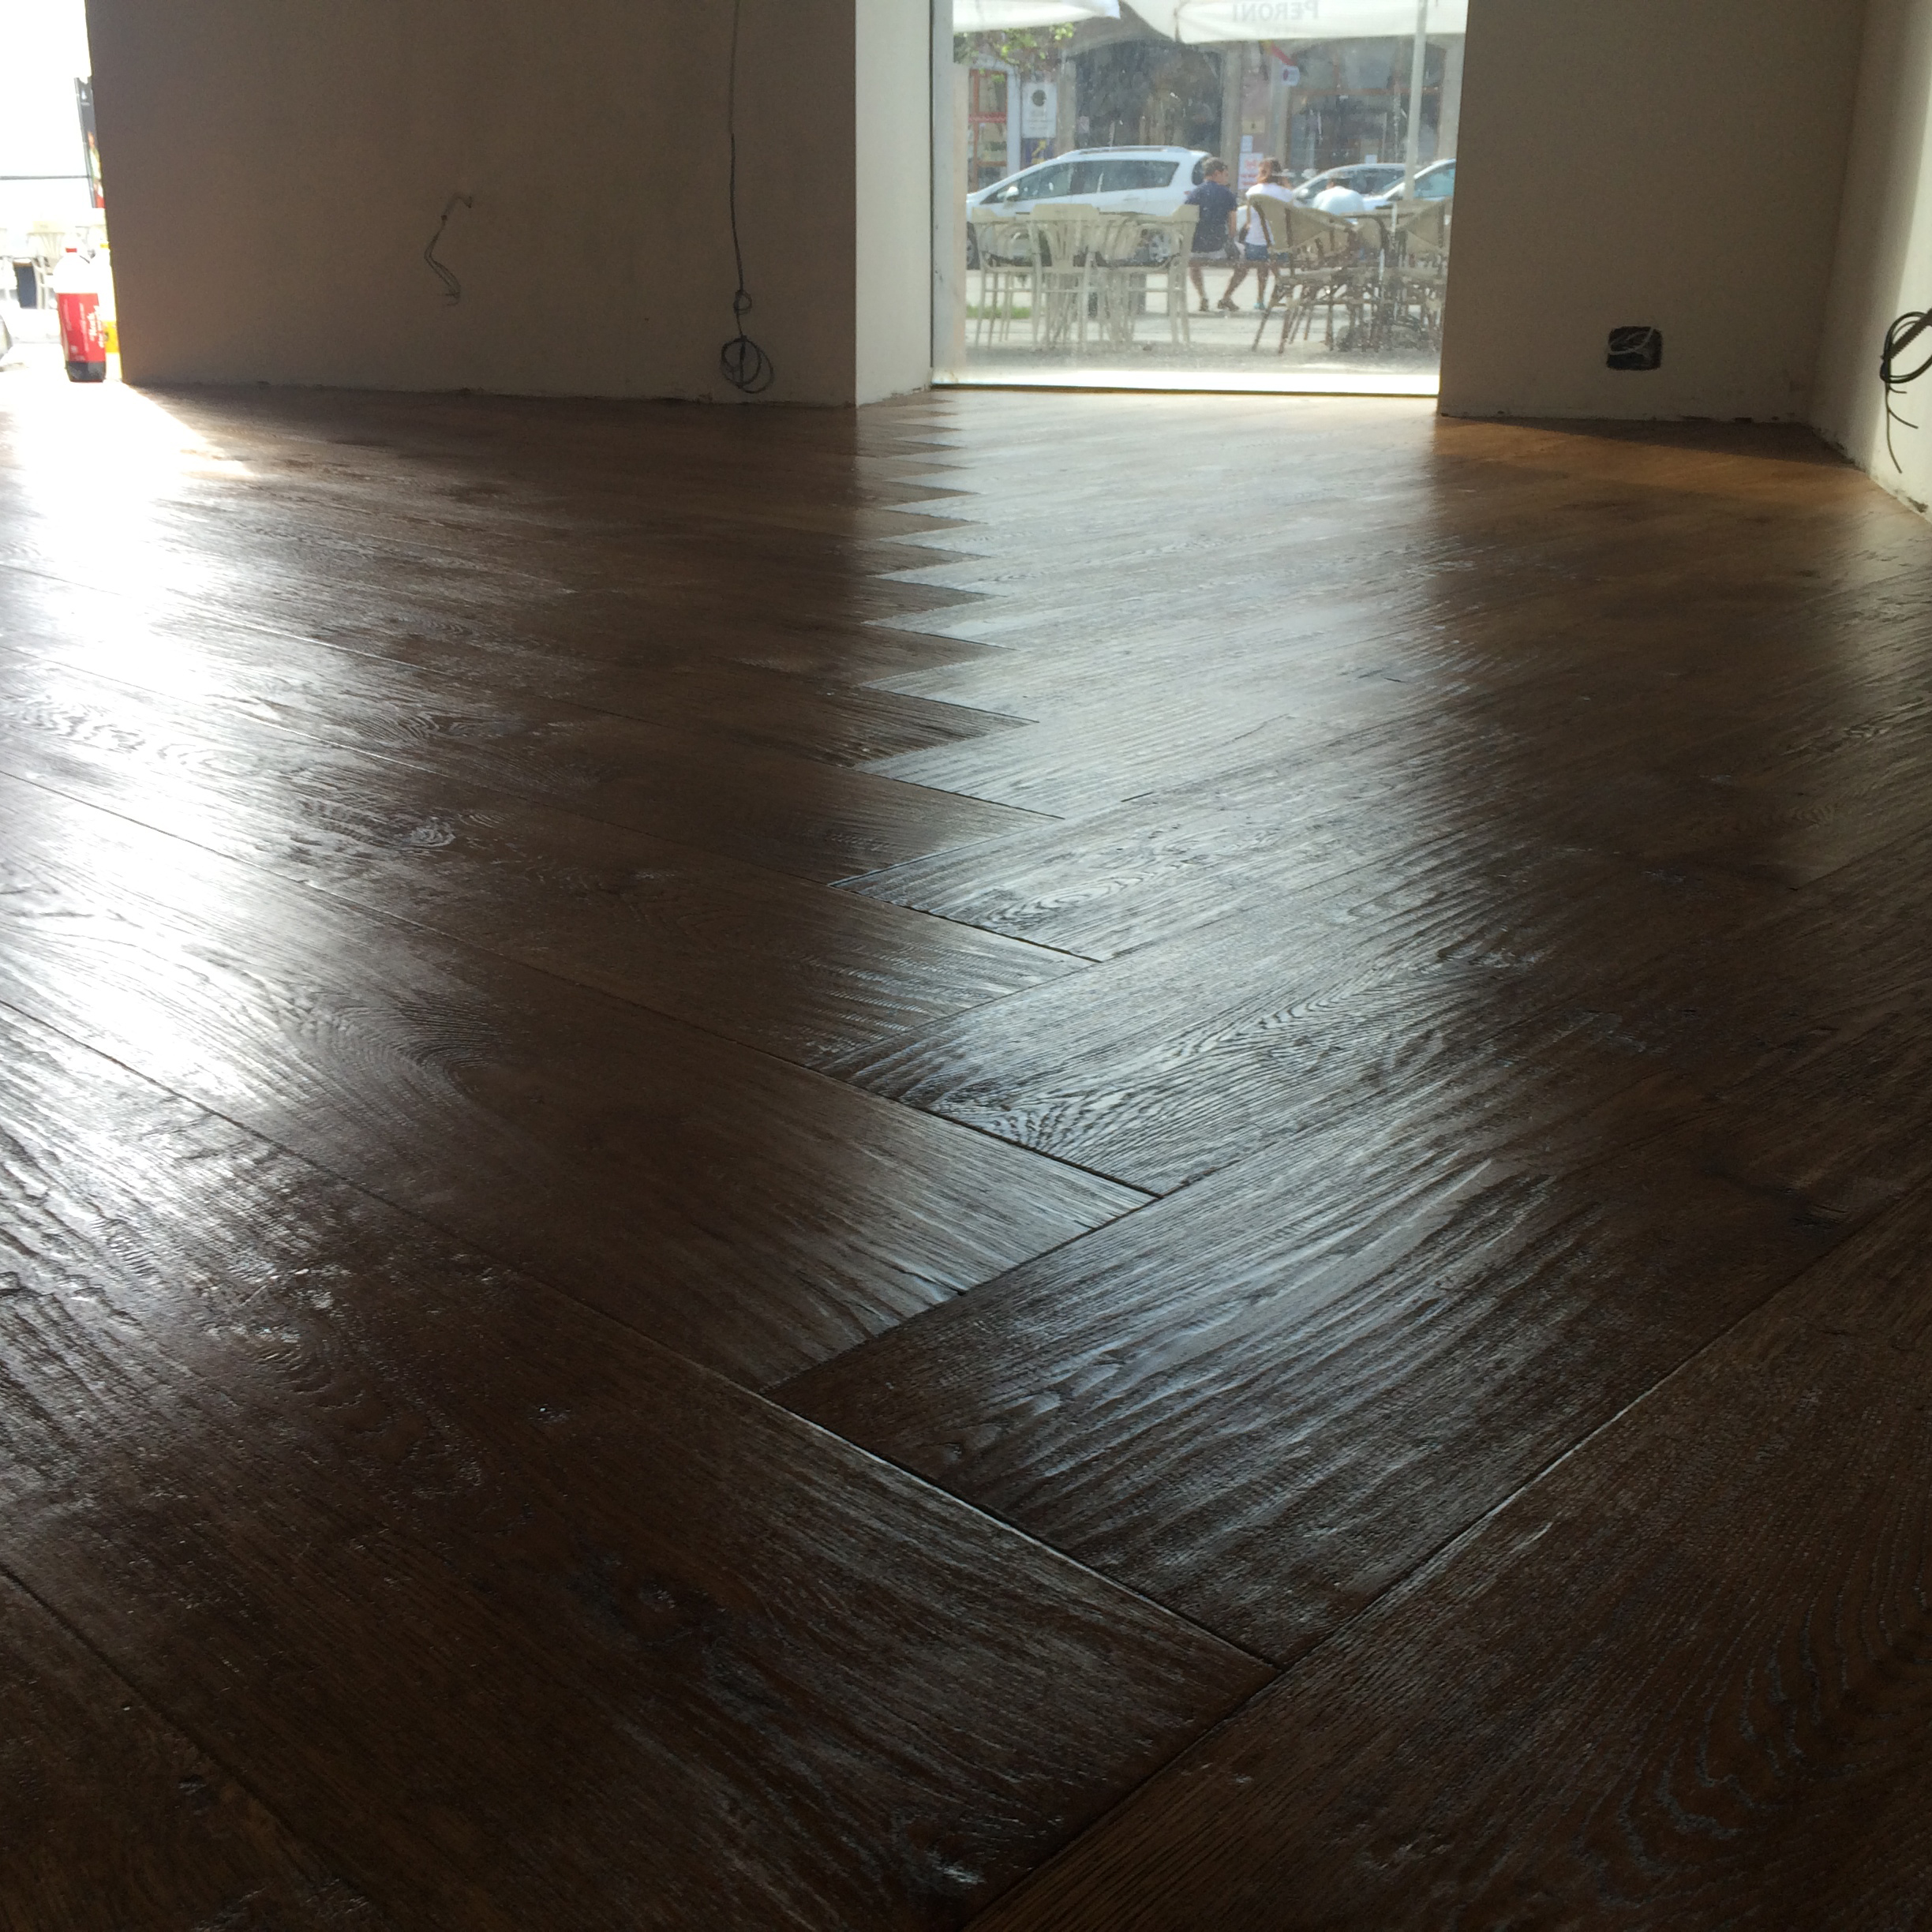 8.Oak Flooring Antique London